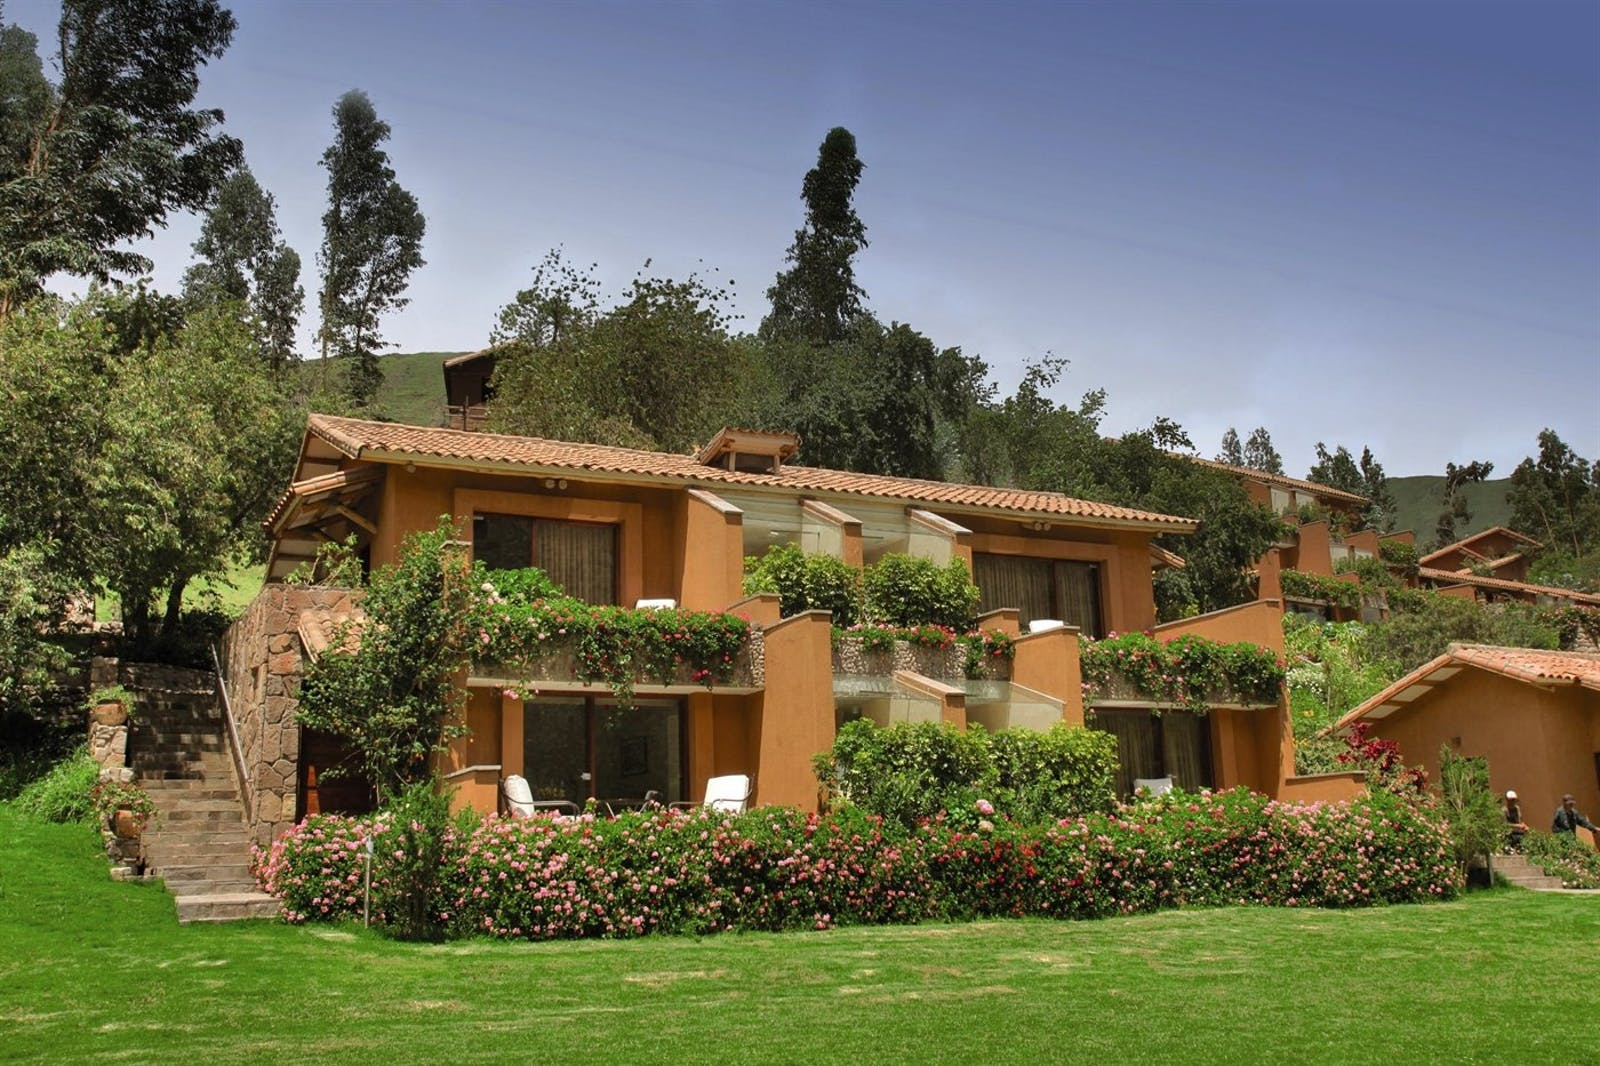 Exterior Accommodation, Rio Sagrado, A Belmond Hotel, Sacred Valley